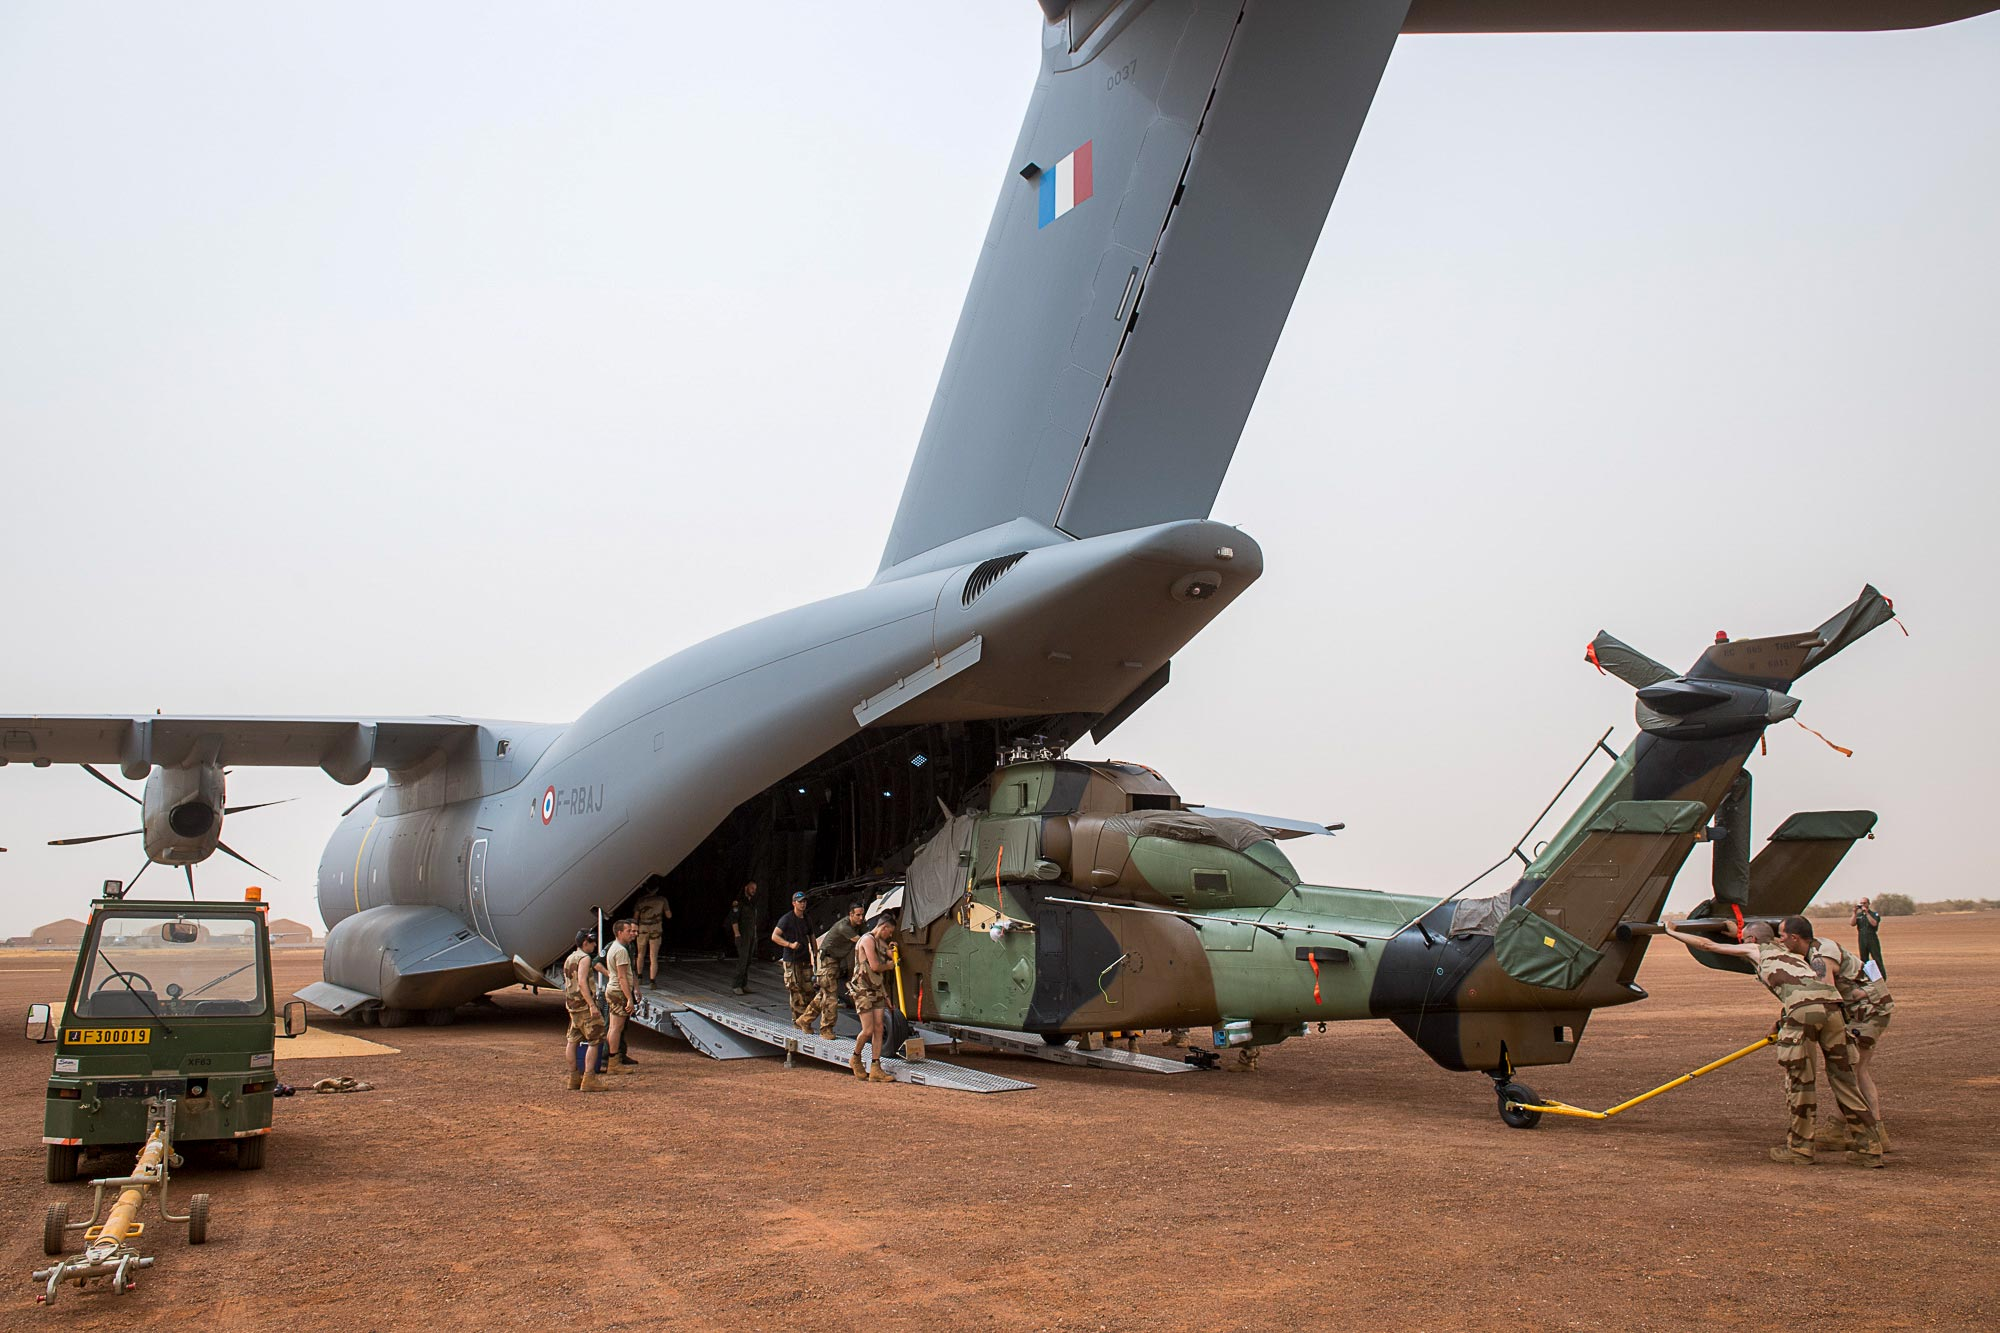 France air operation in Burkina Faso confirmed after reports